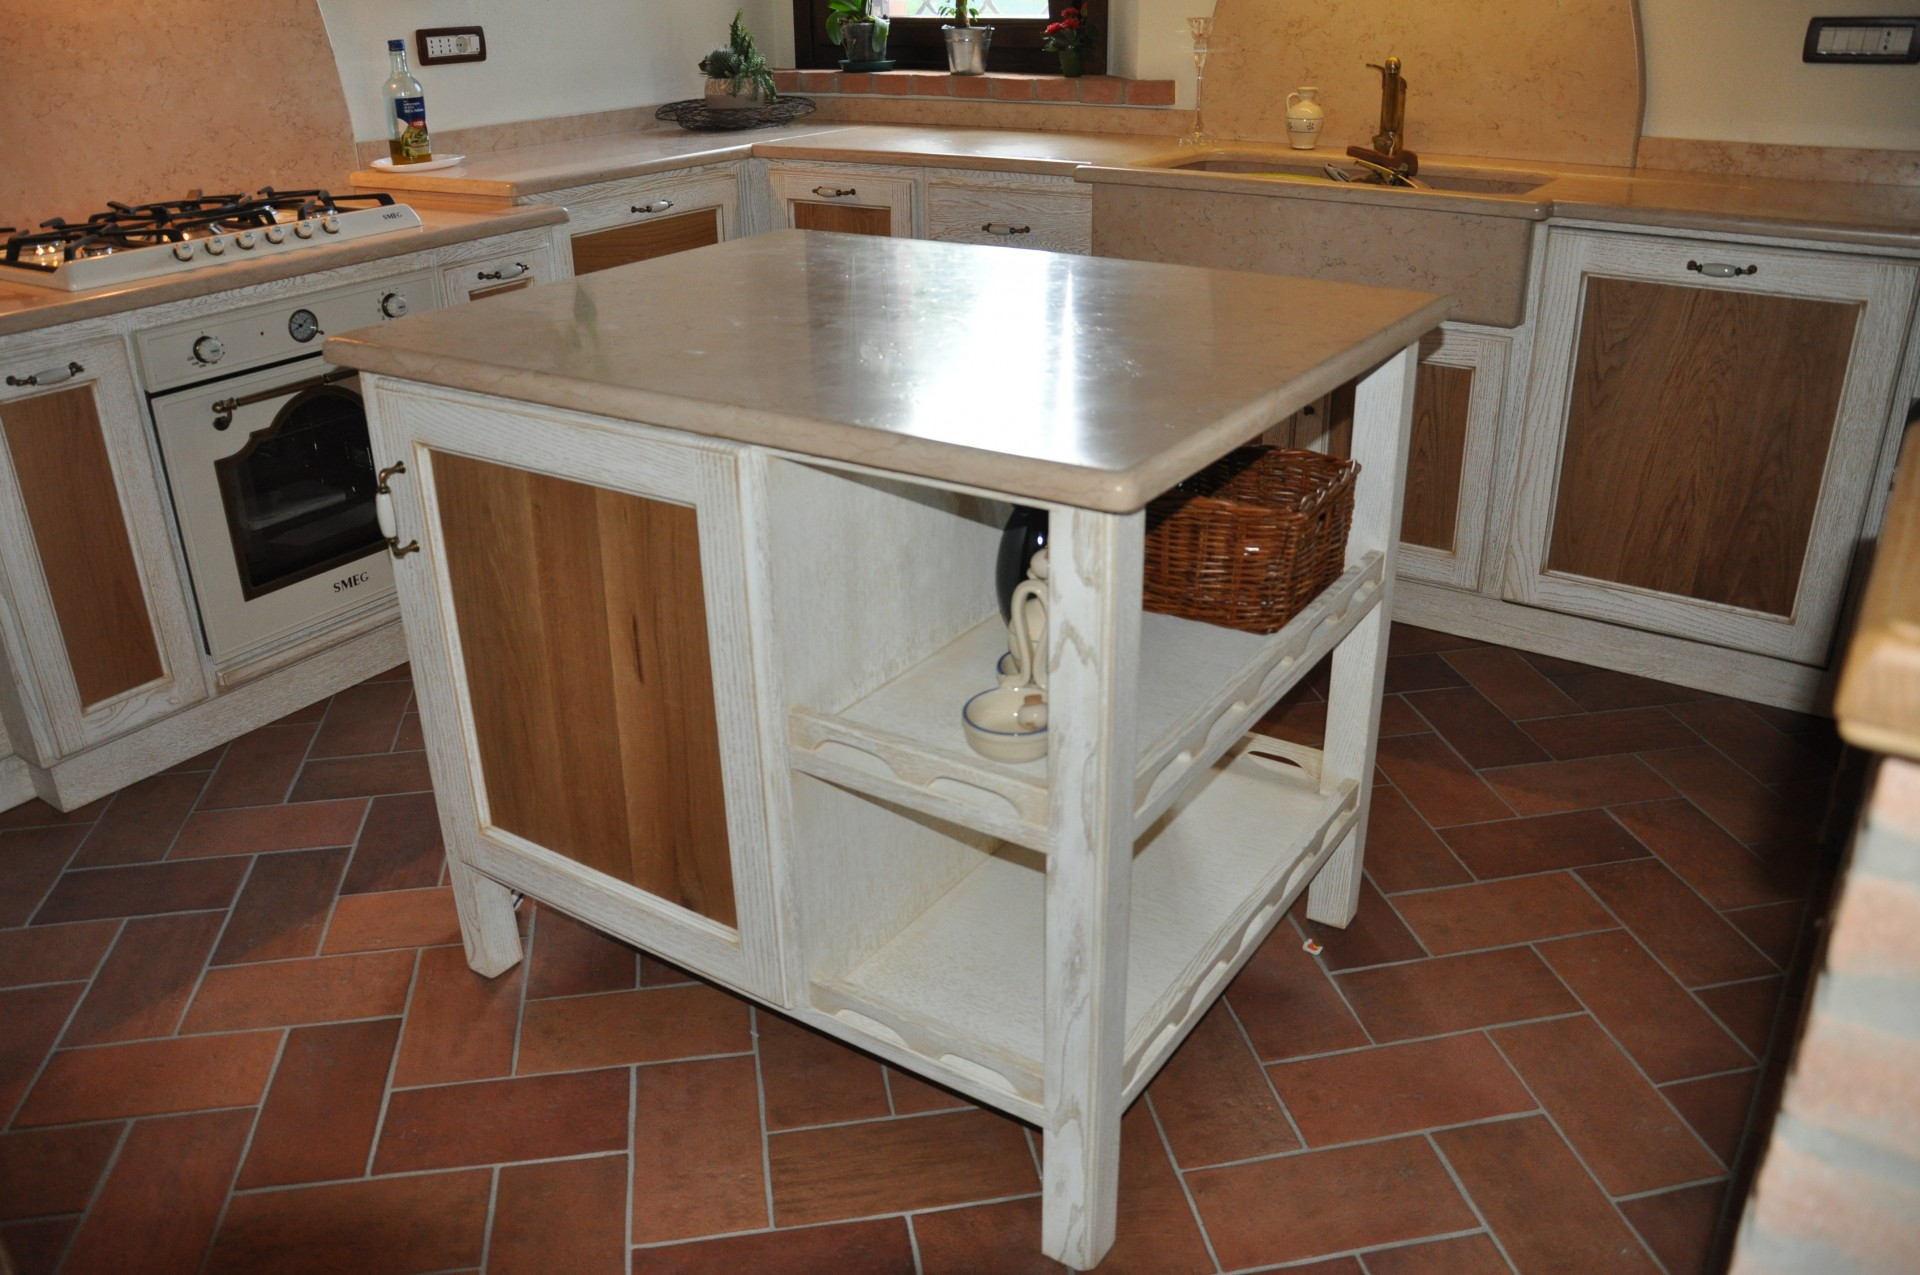 Isola pallet idee cucina - Isola in cucina ...